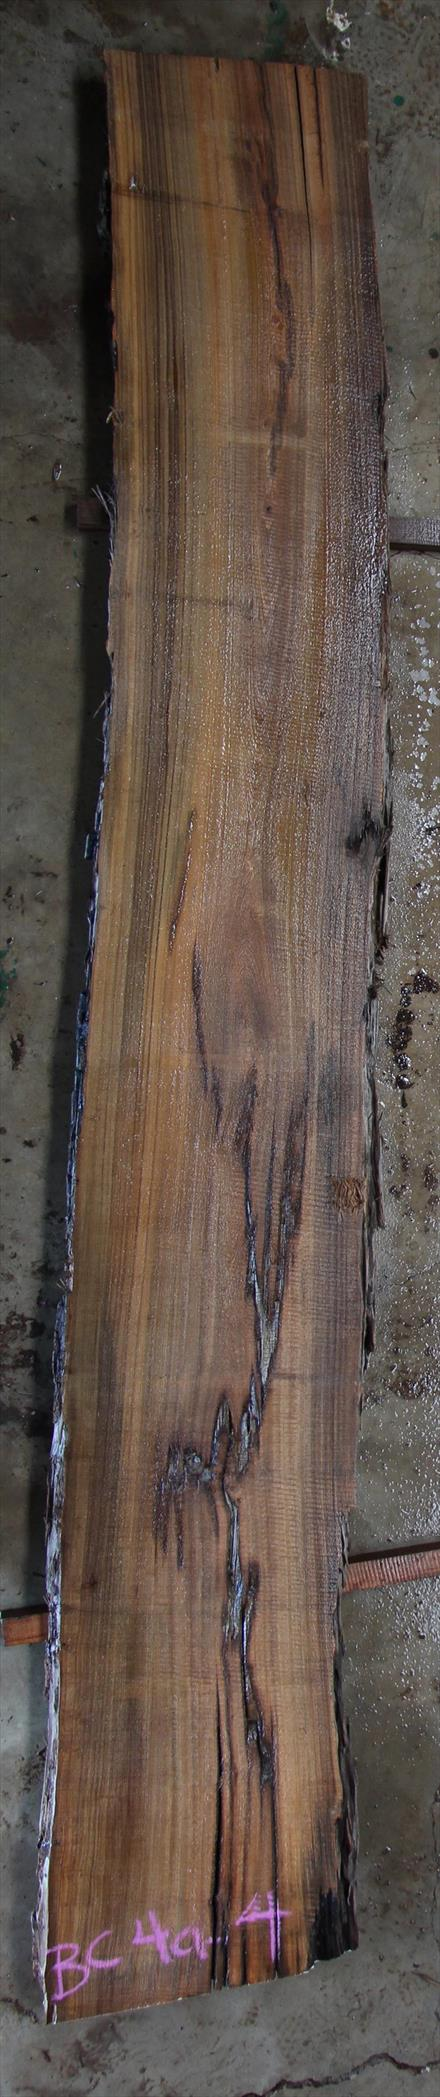 Buried Cypress Slab BC004a-04